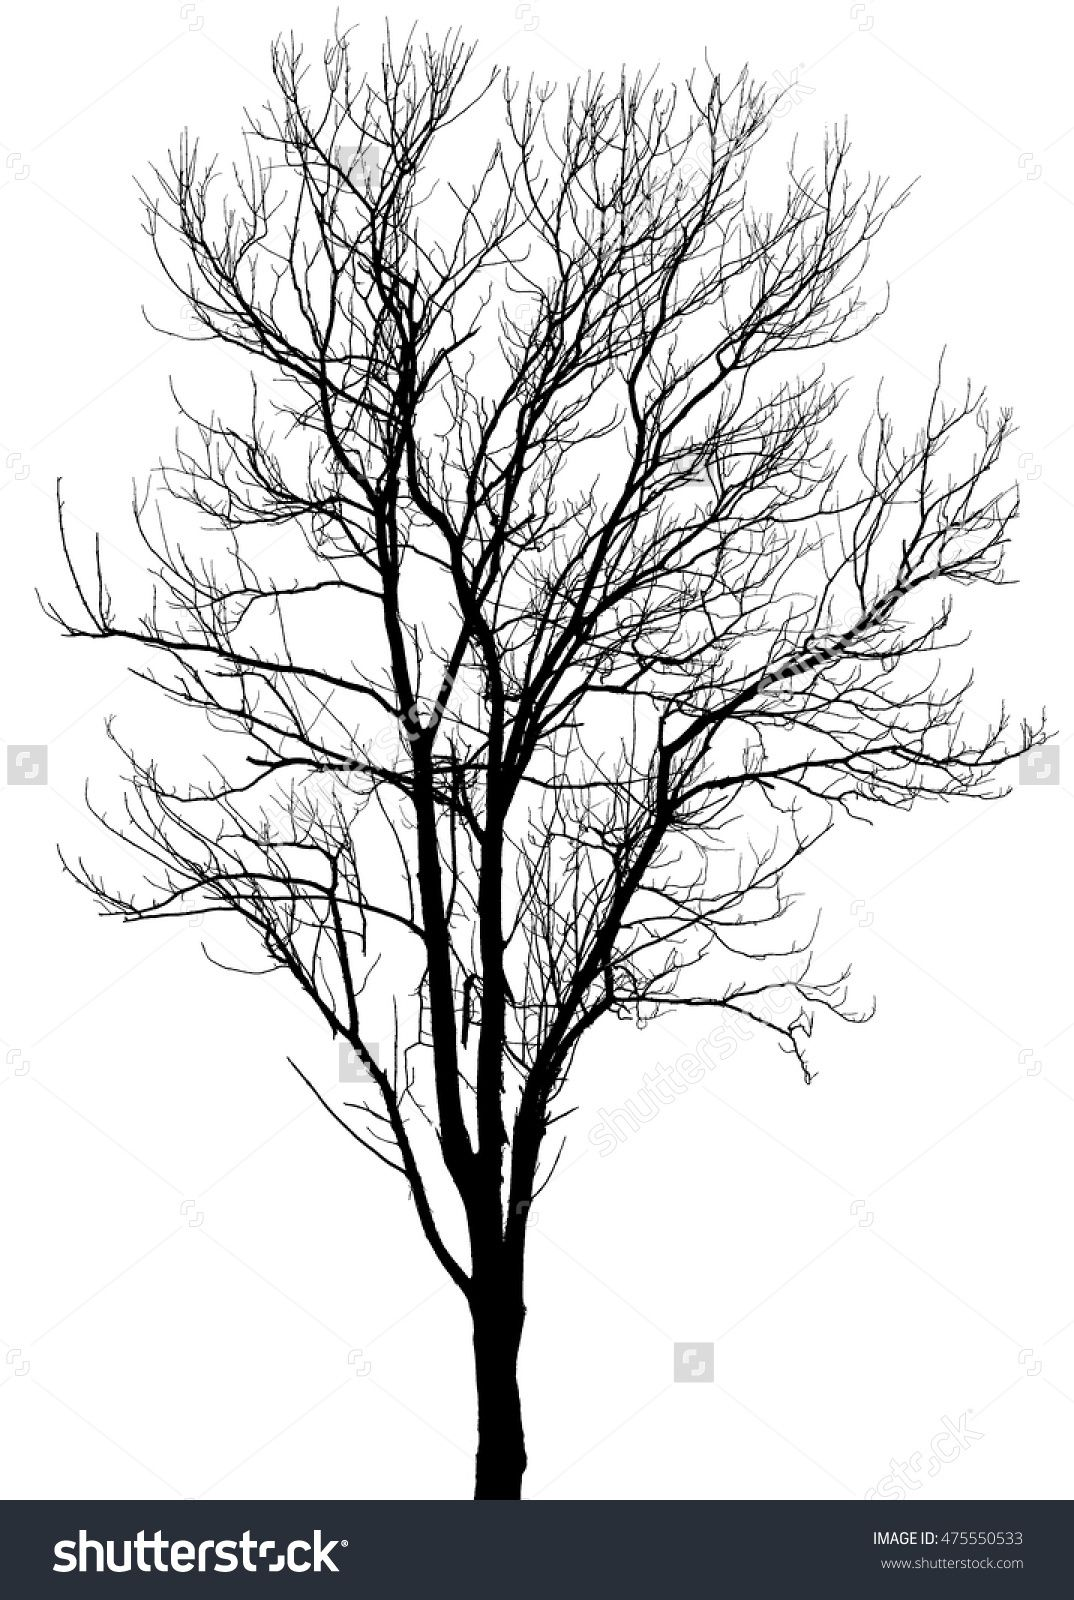 Dead clipart apple tree. Silhouette dry or on